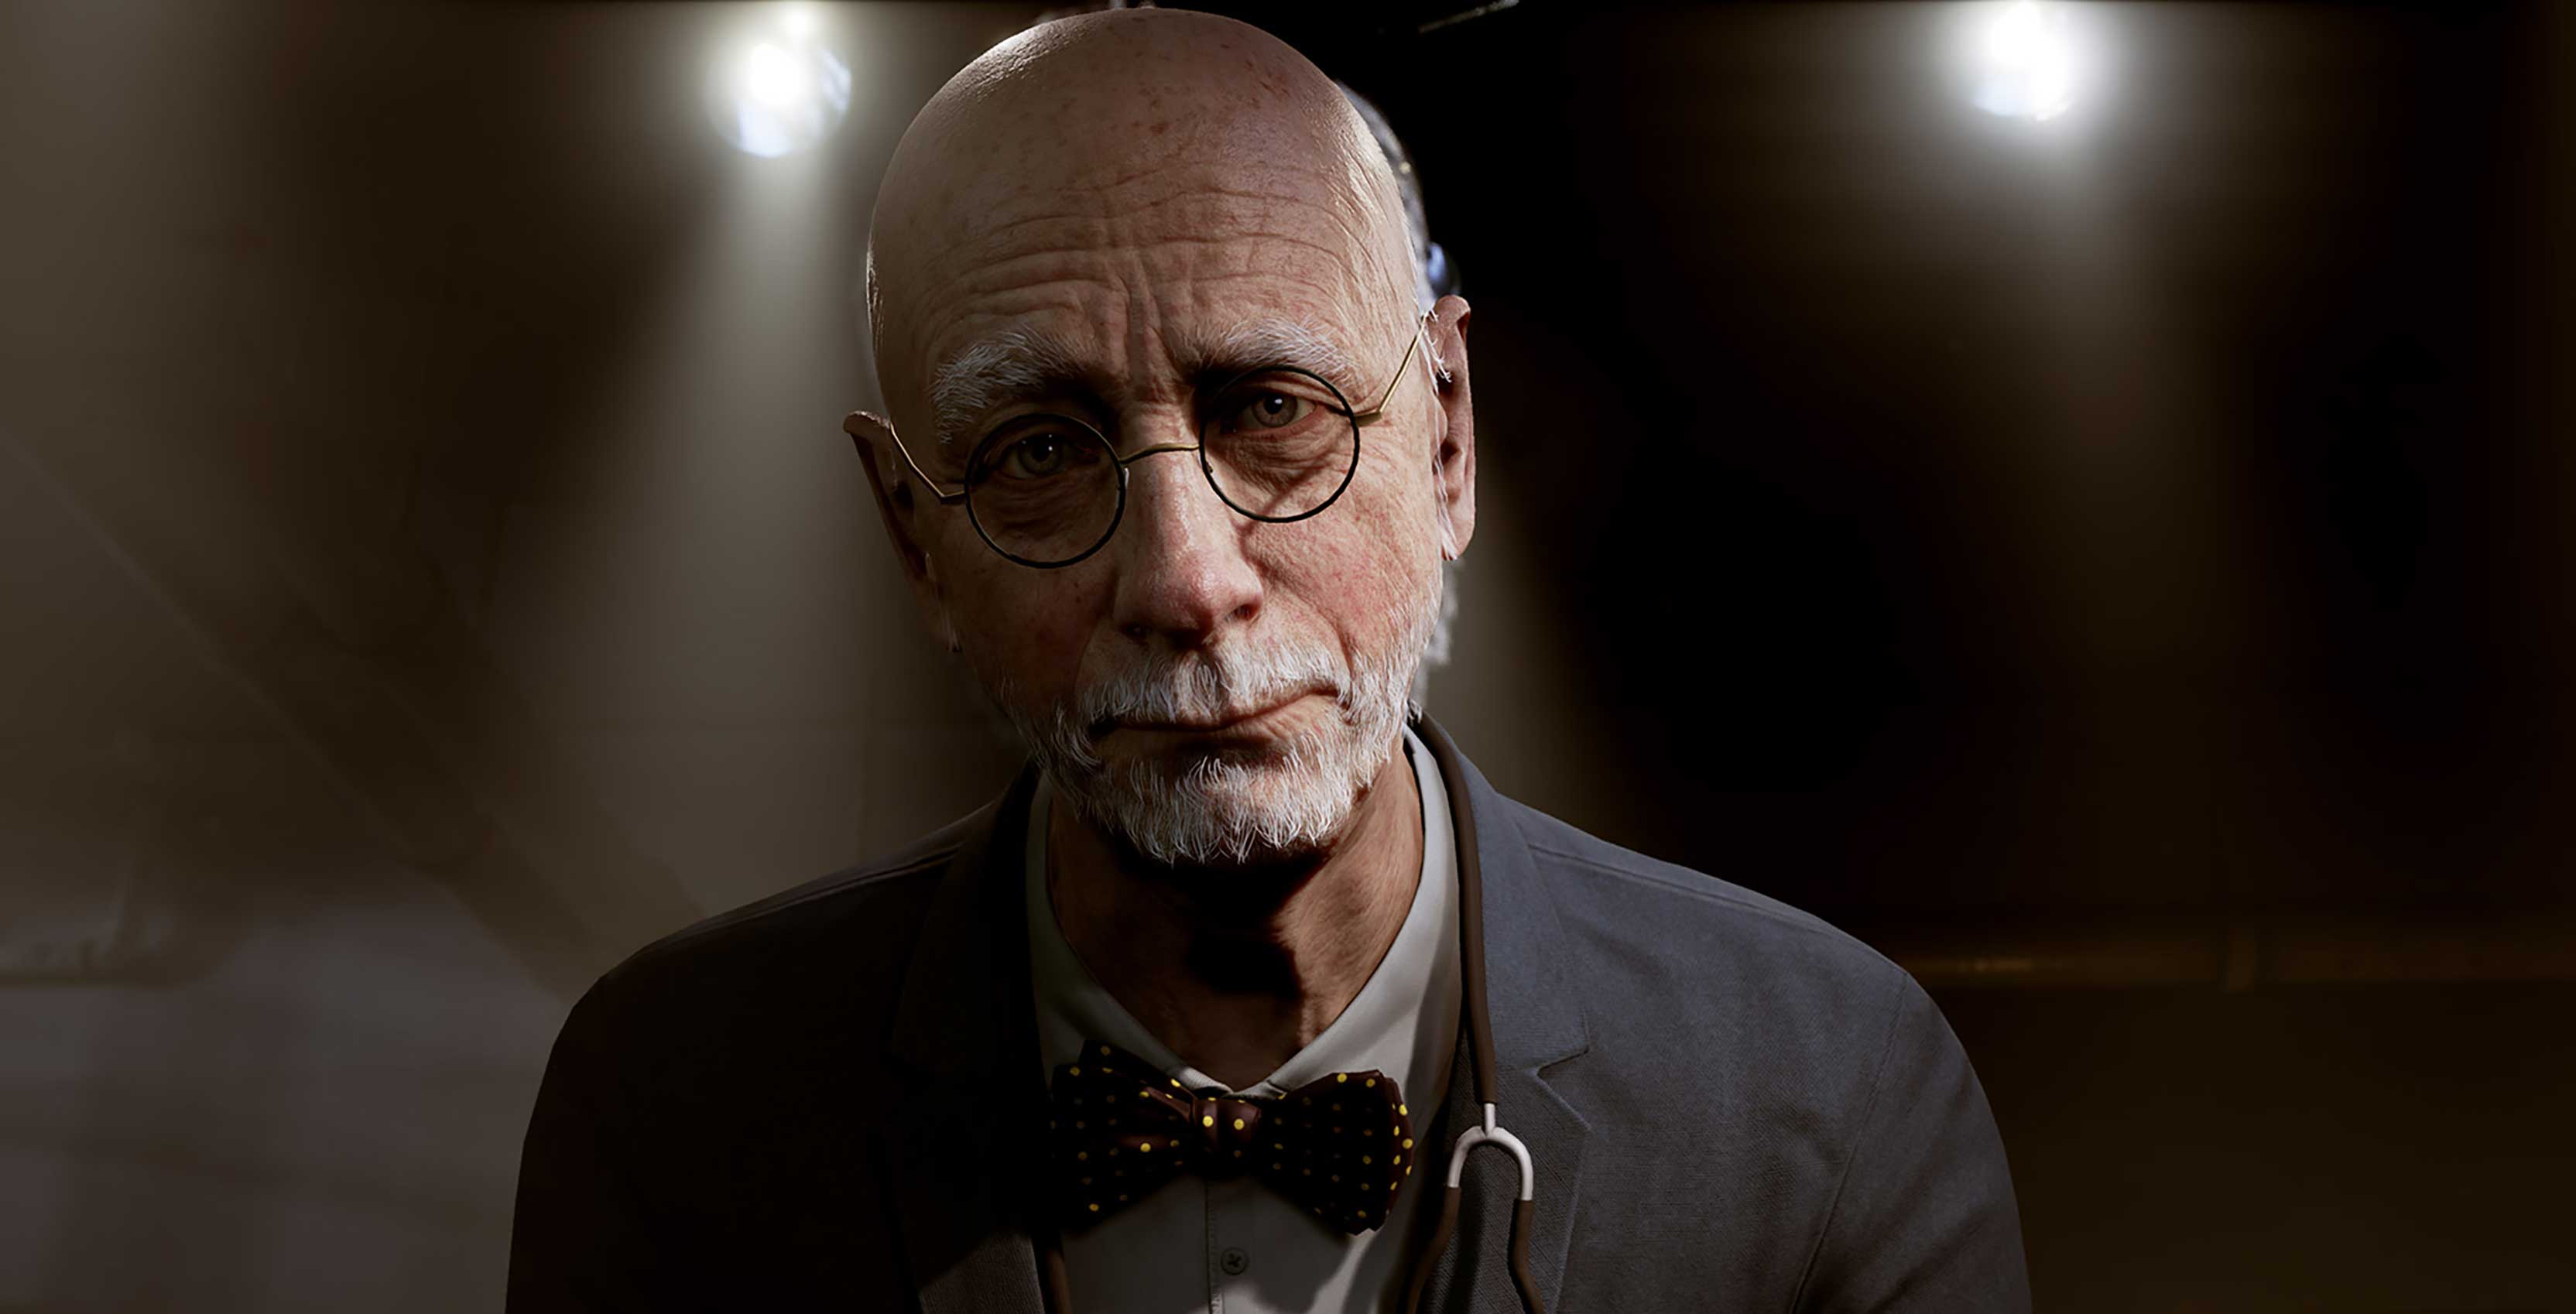 The Inpatient Dr. Bragg